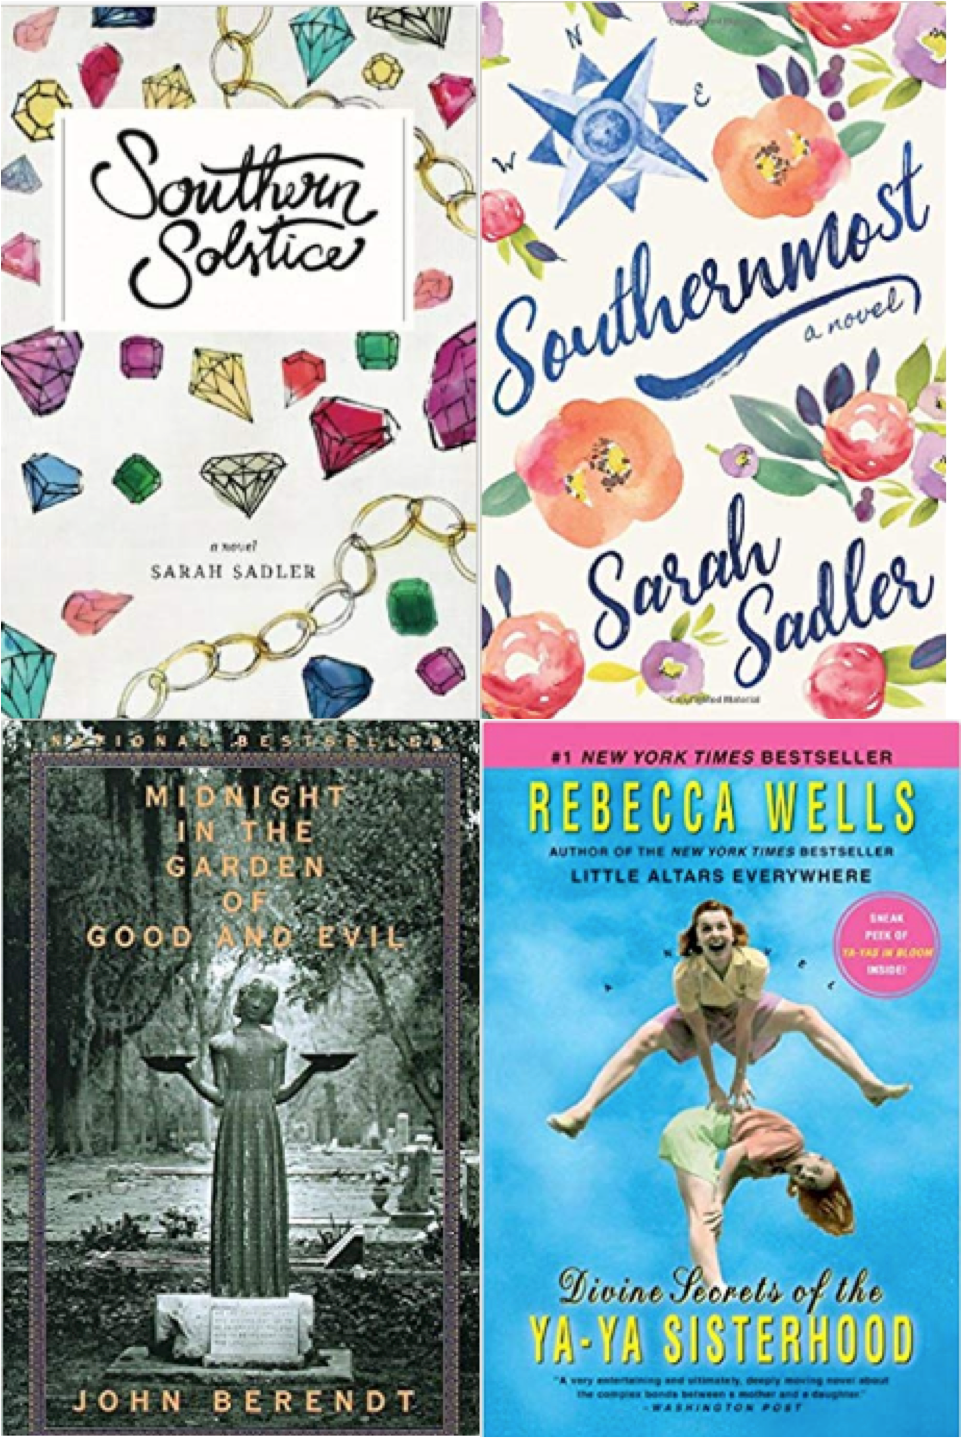 Best summer beach reads book list, books set in the south, southern solstice, southernmost, midnight in the garden of good and evil, divine secrets of the ya-ya sisterhood